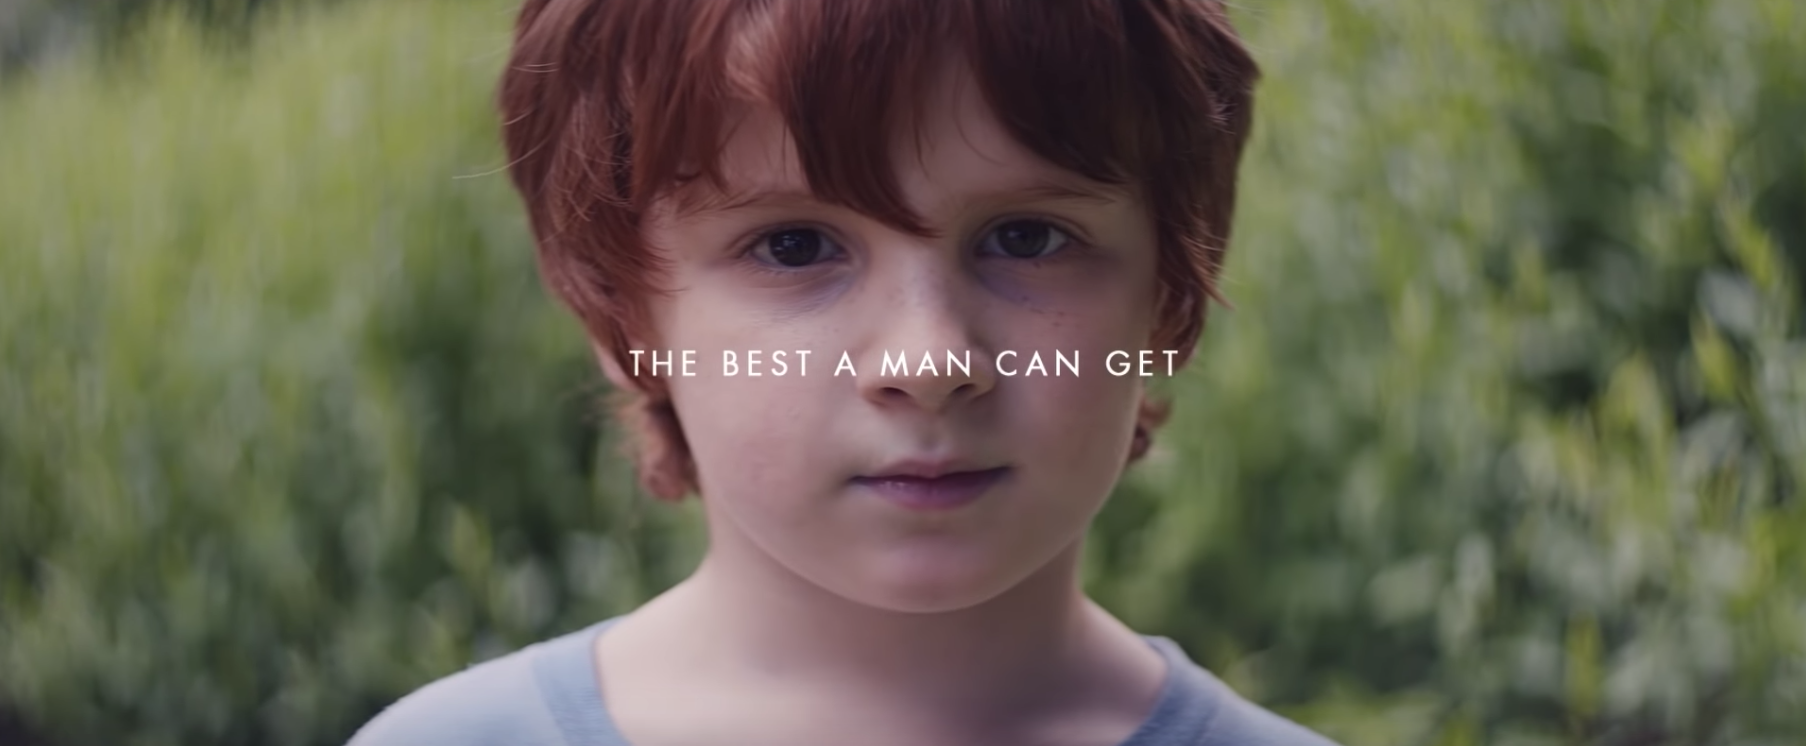 Why Did The New Gillette Ad Backfire So Horrendously